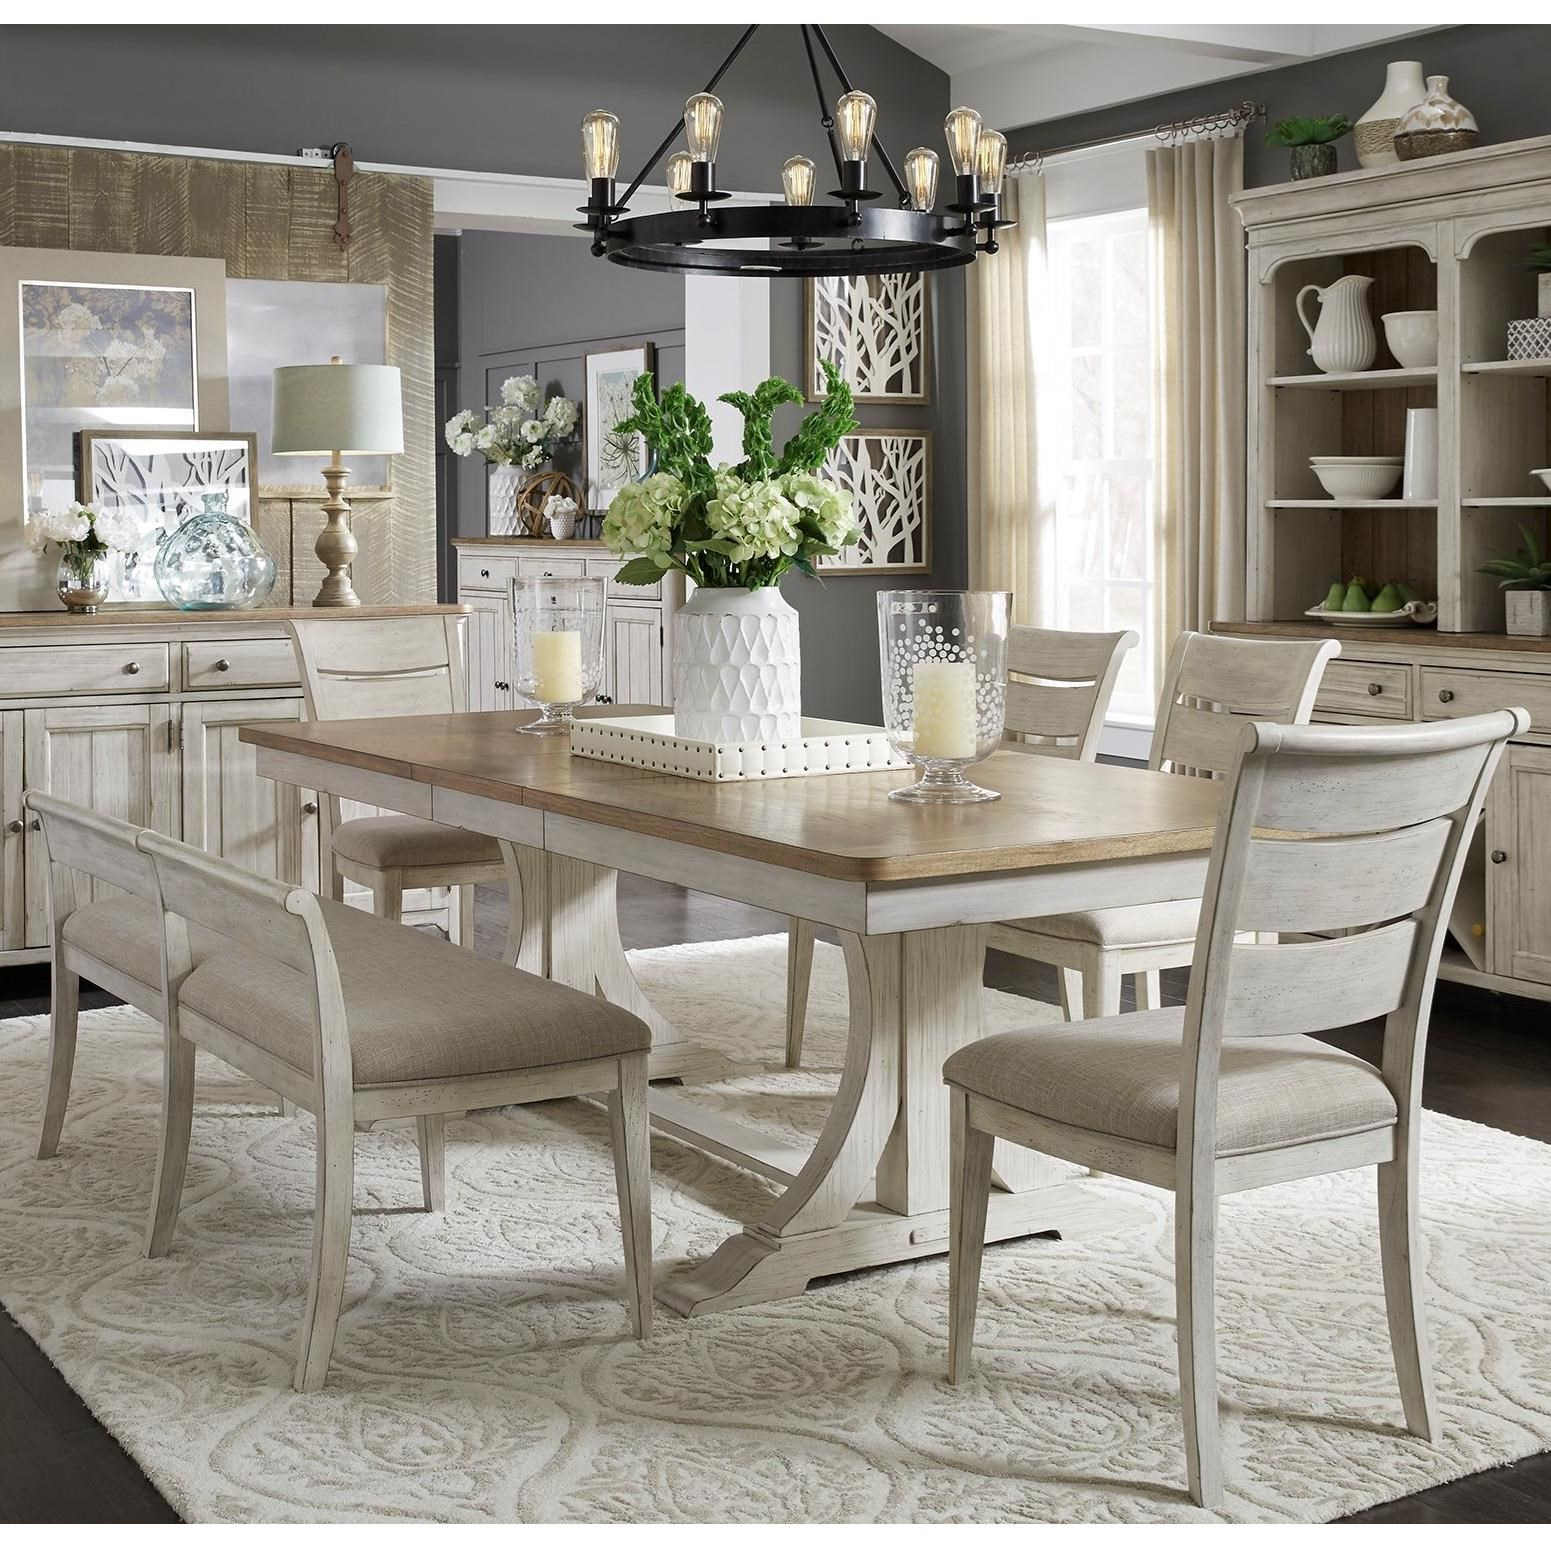 Farmhouse Reimagined 6-Piece Trestle Table Set by Liberty Furniture at Dinette Depot